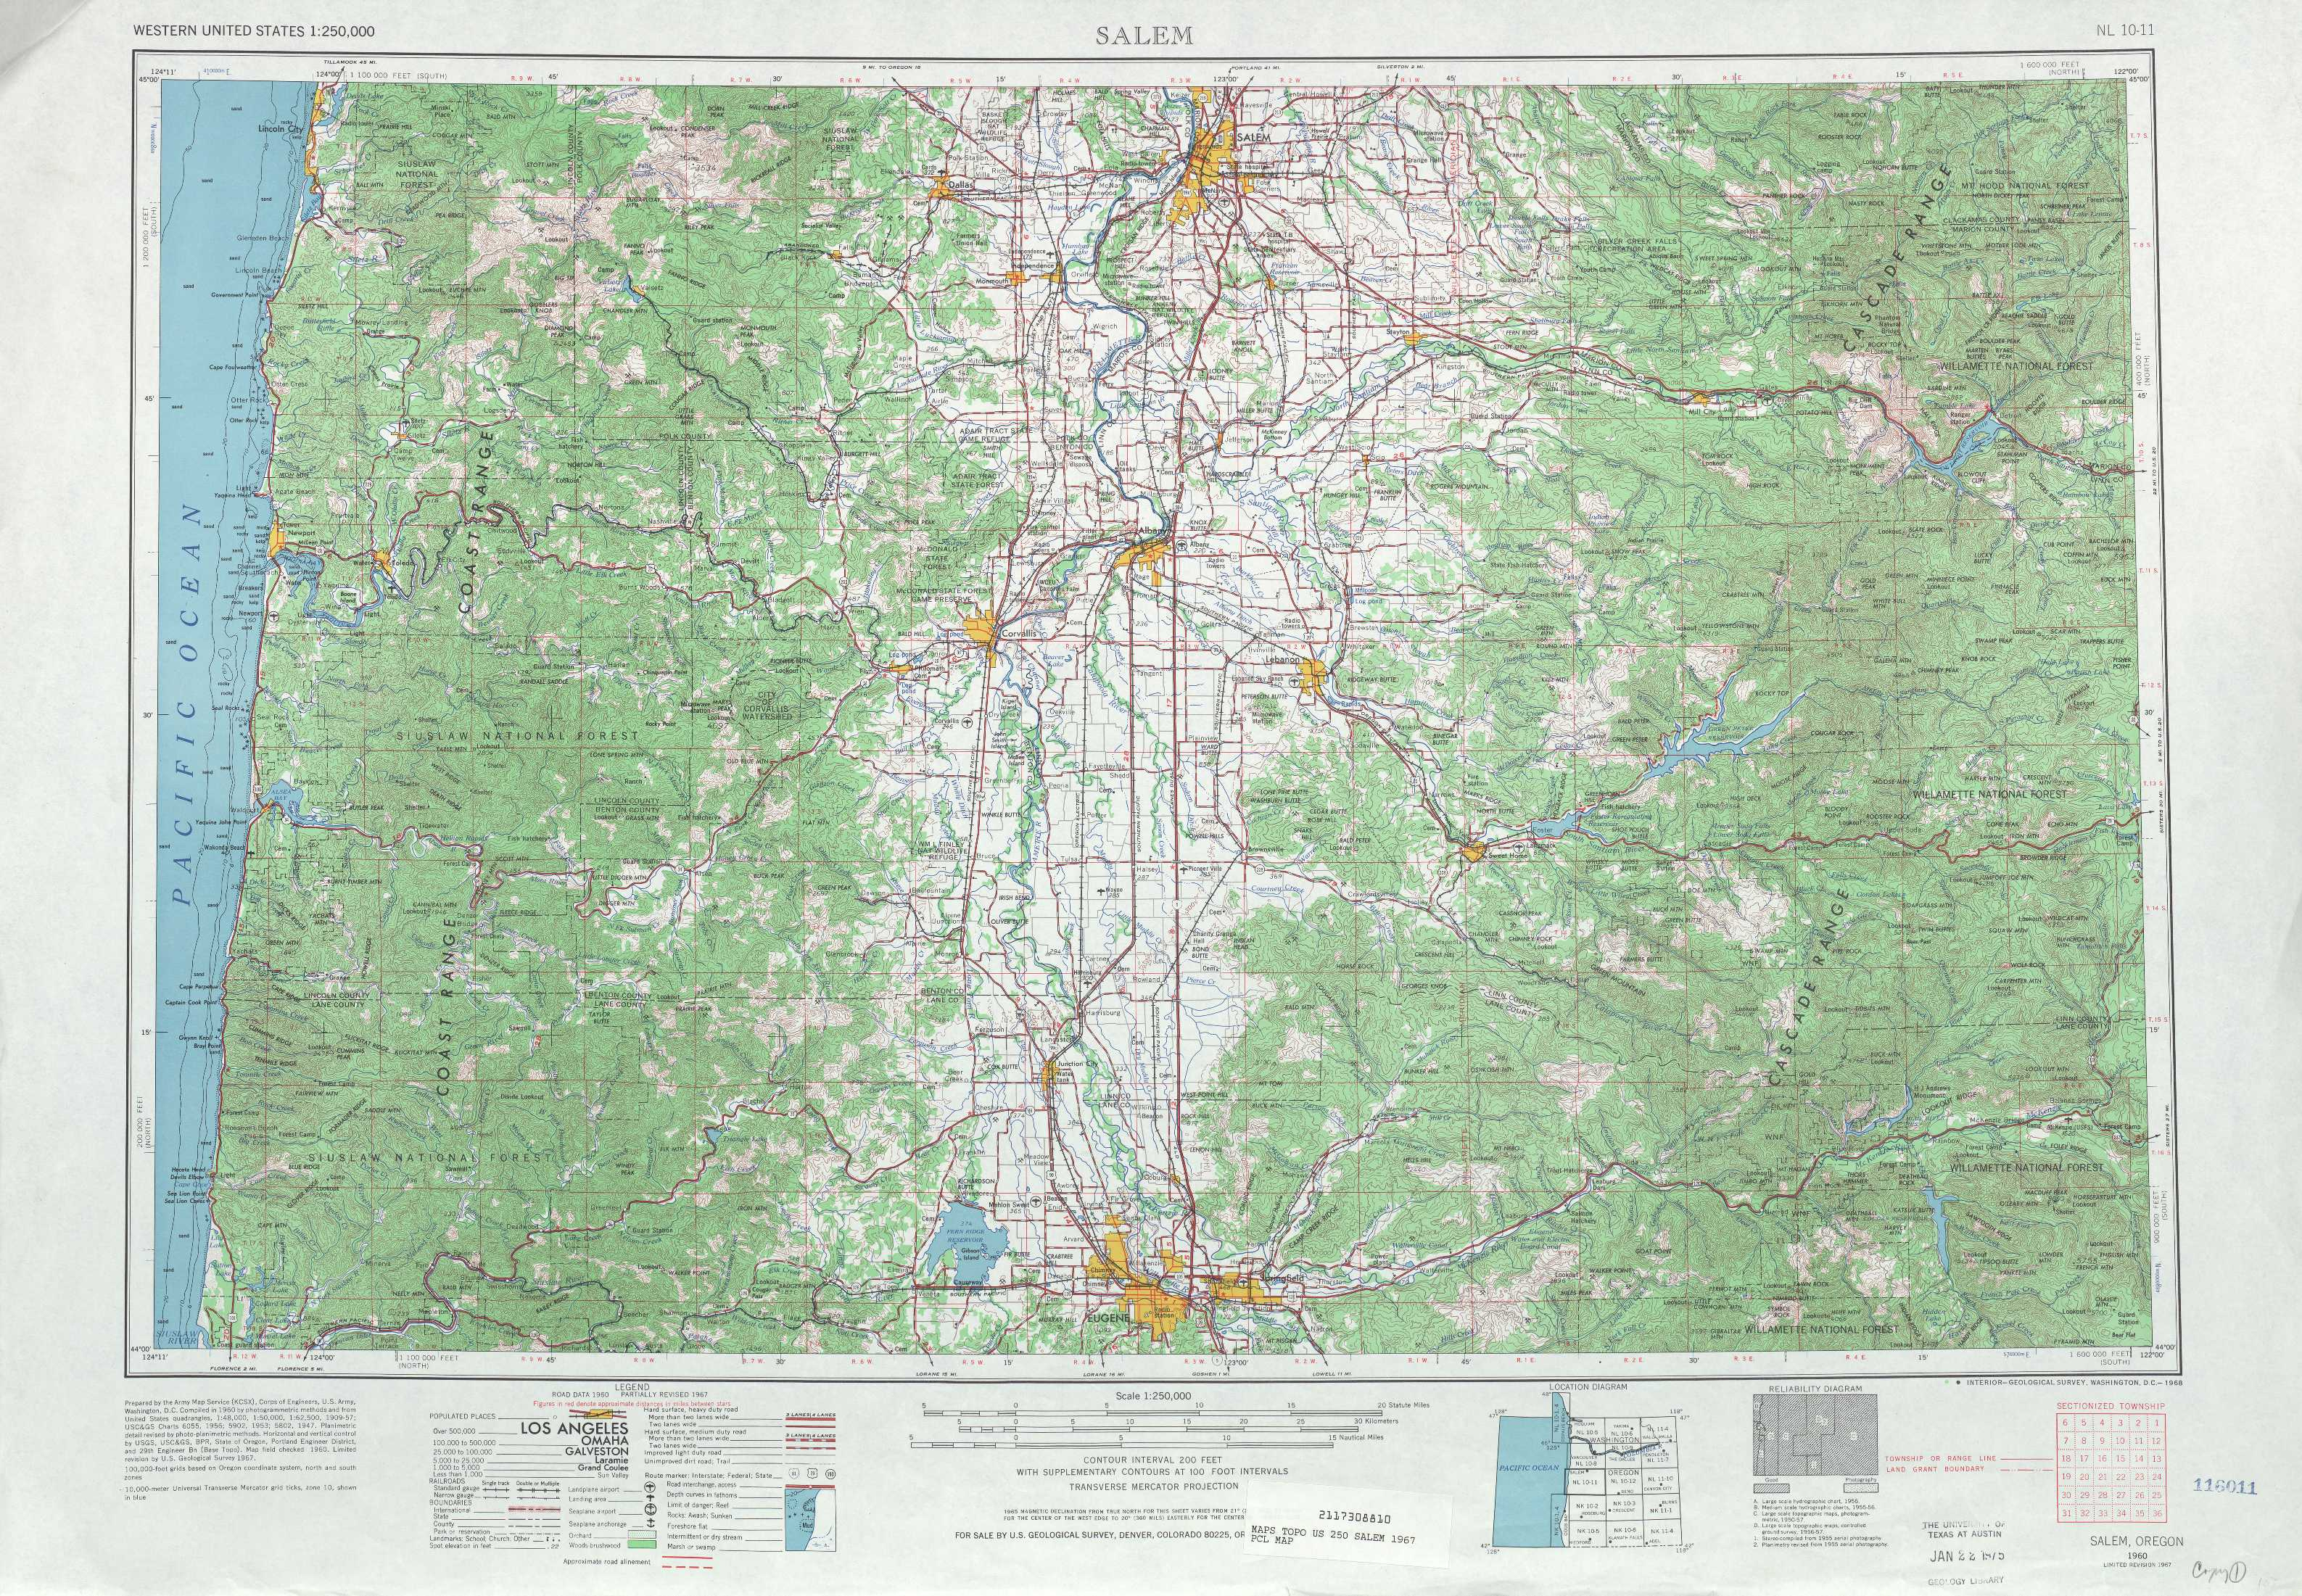 Salem Topographic Maps, Or - Usgs Topo Quad 44122A1 At 1:250,000 Scale - Usgs Printable Maps